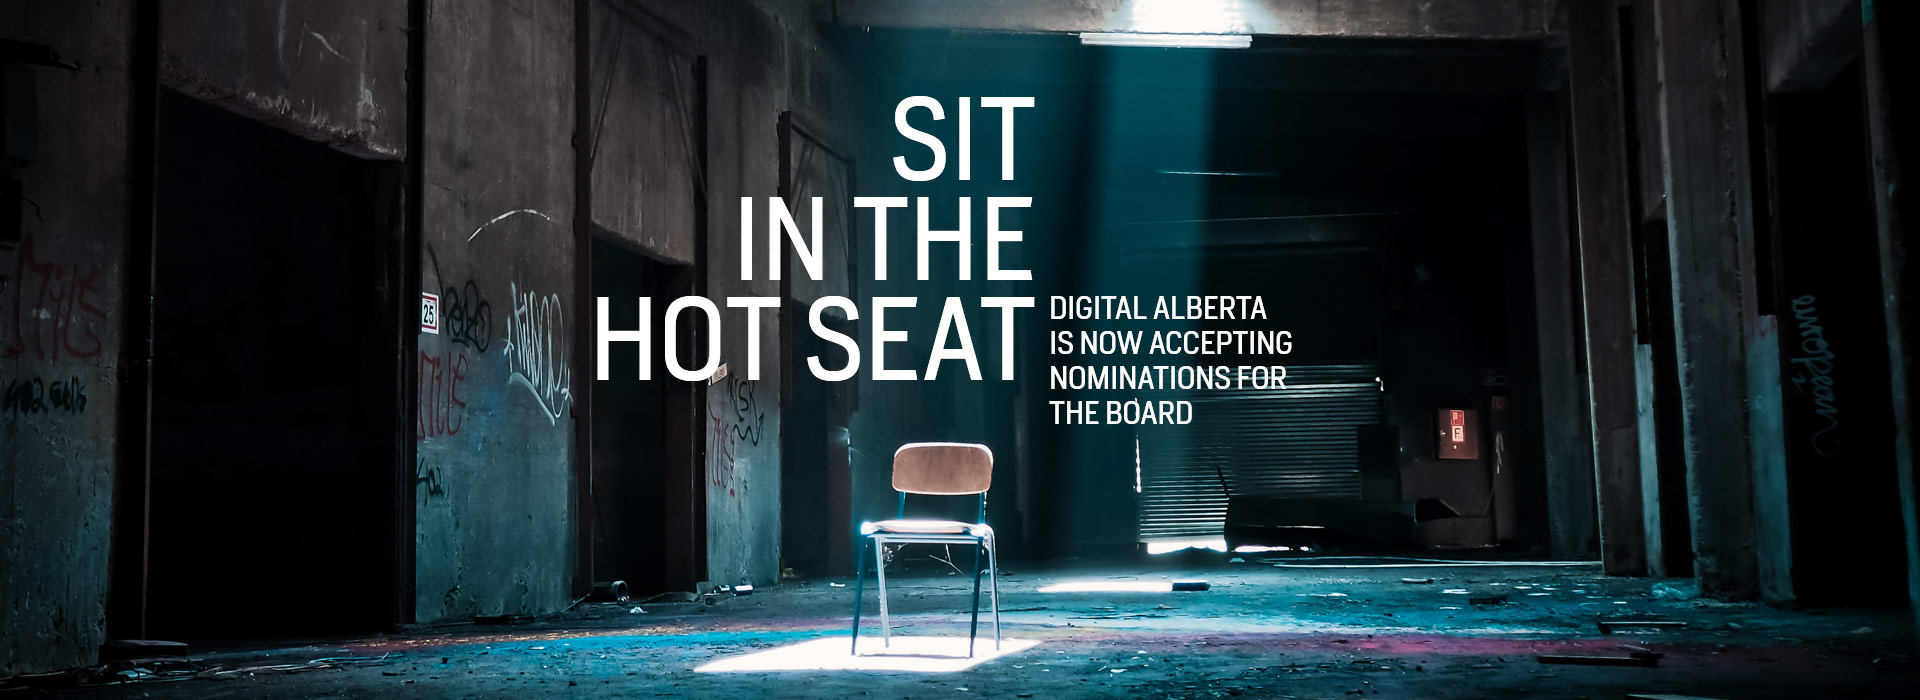 Sit in the hot seat